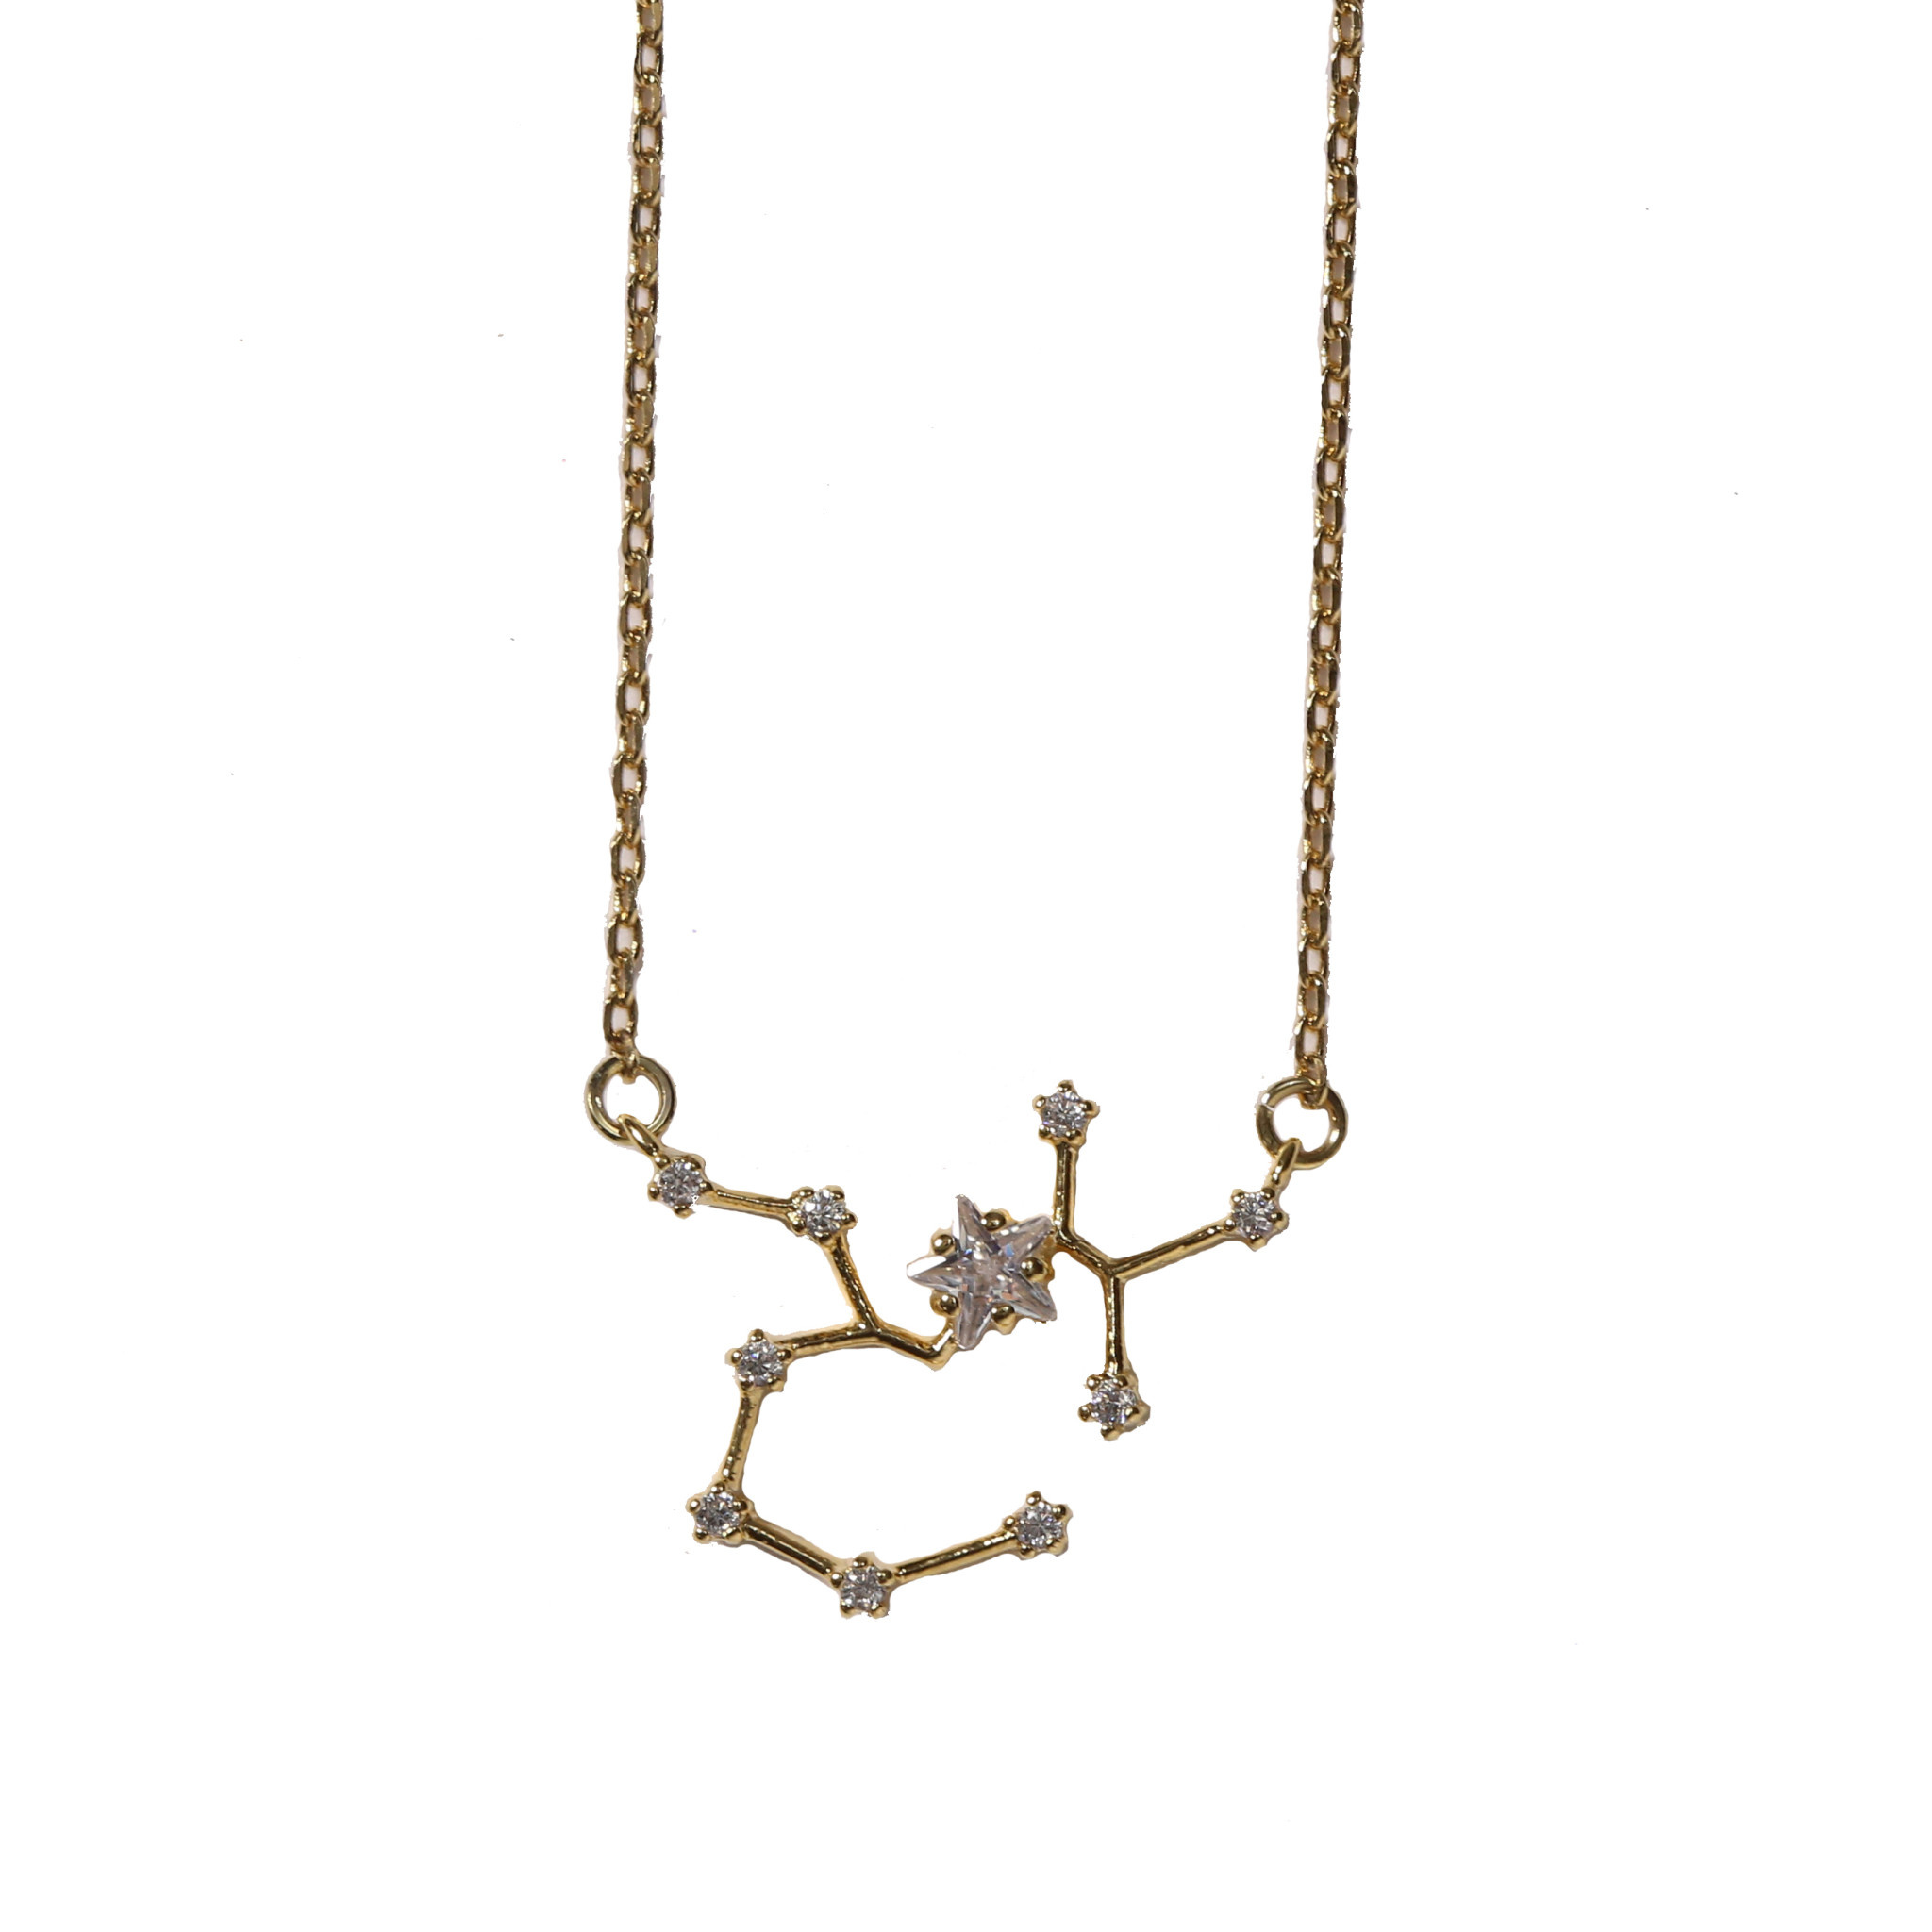 Beaucoup Designs Gold Dipped Constellation Necklace